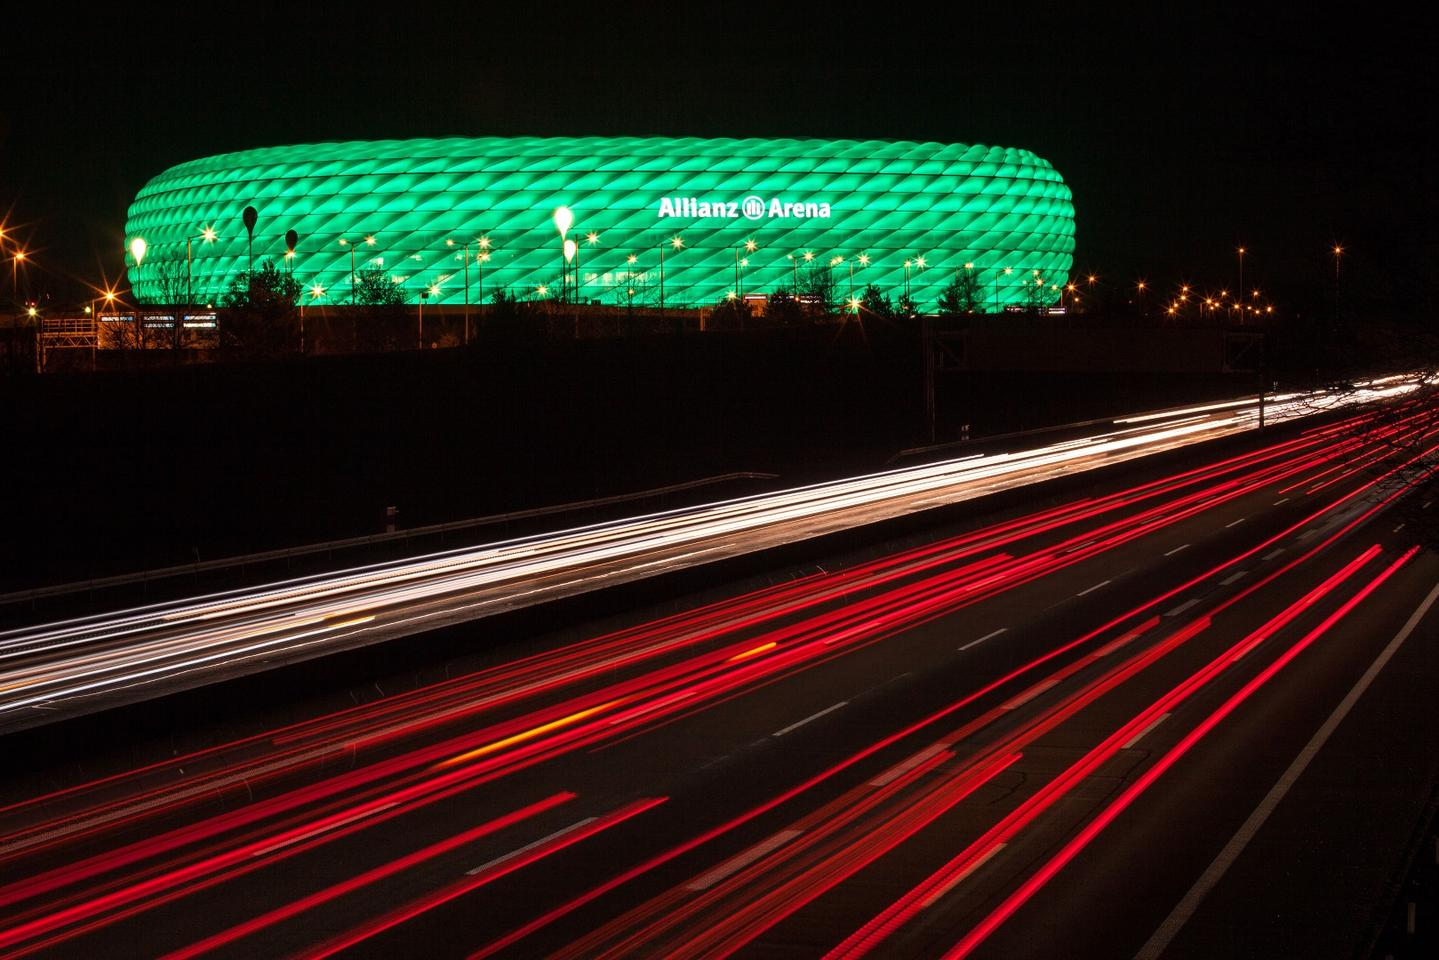 The LED façade can produce 16 million colors